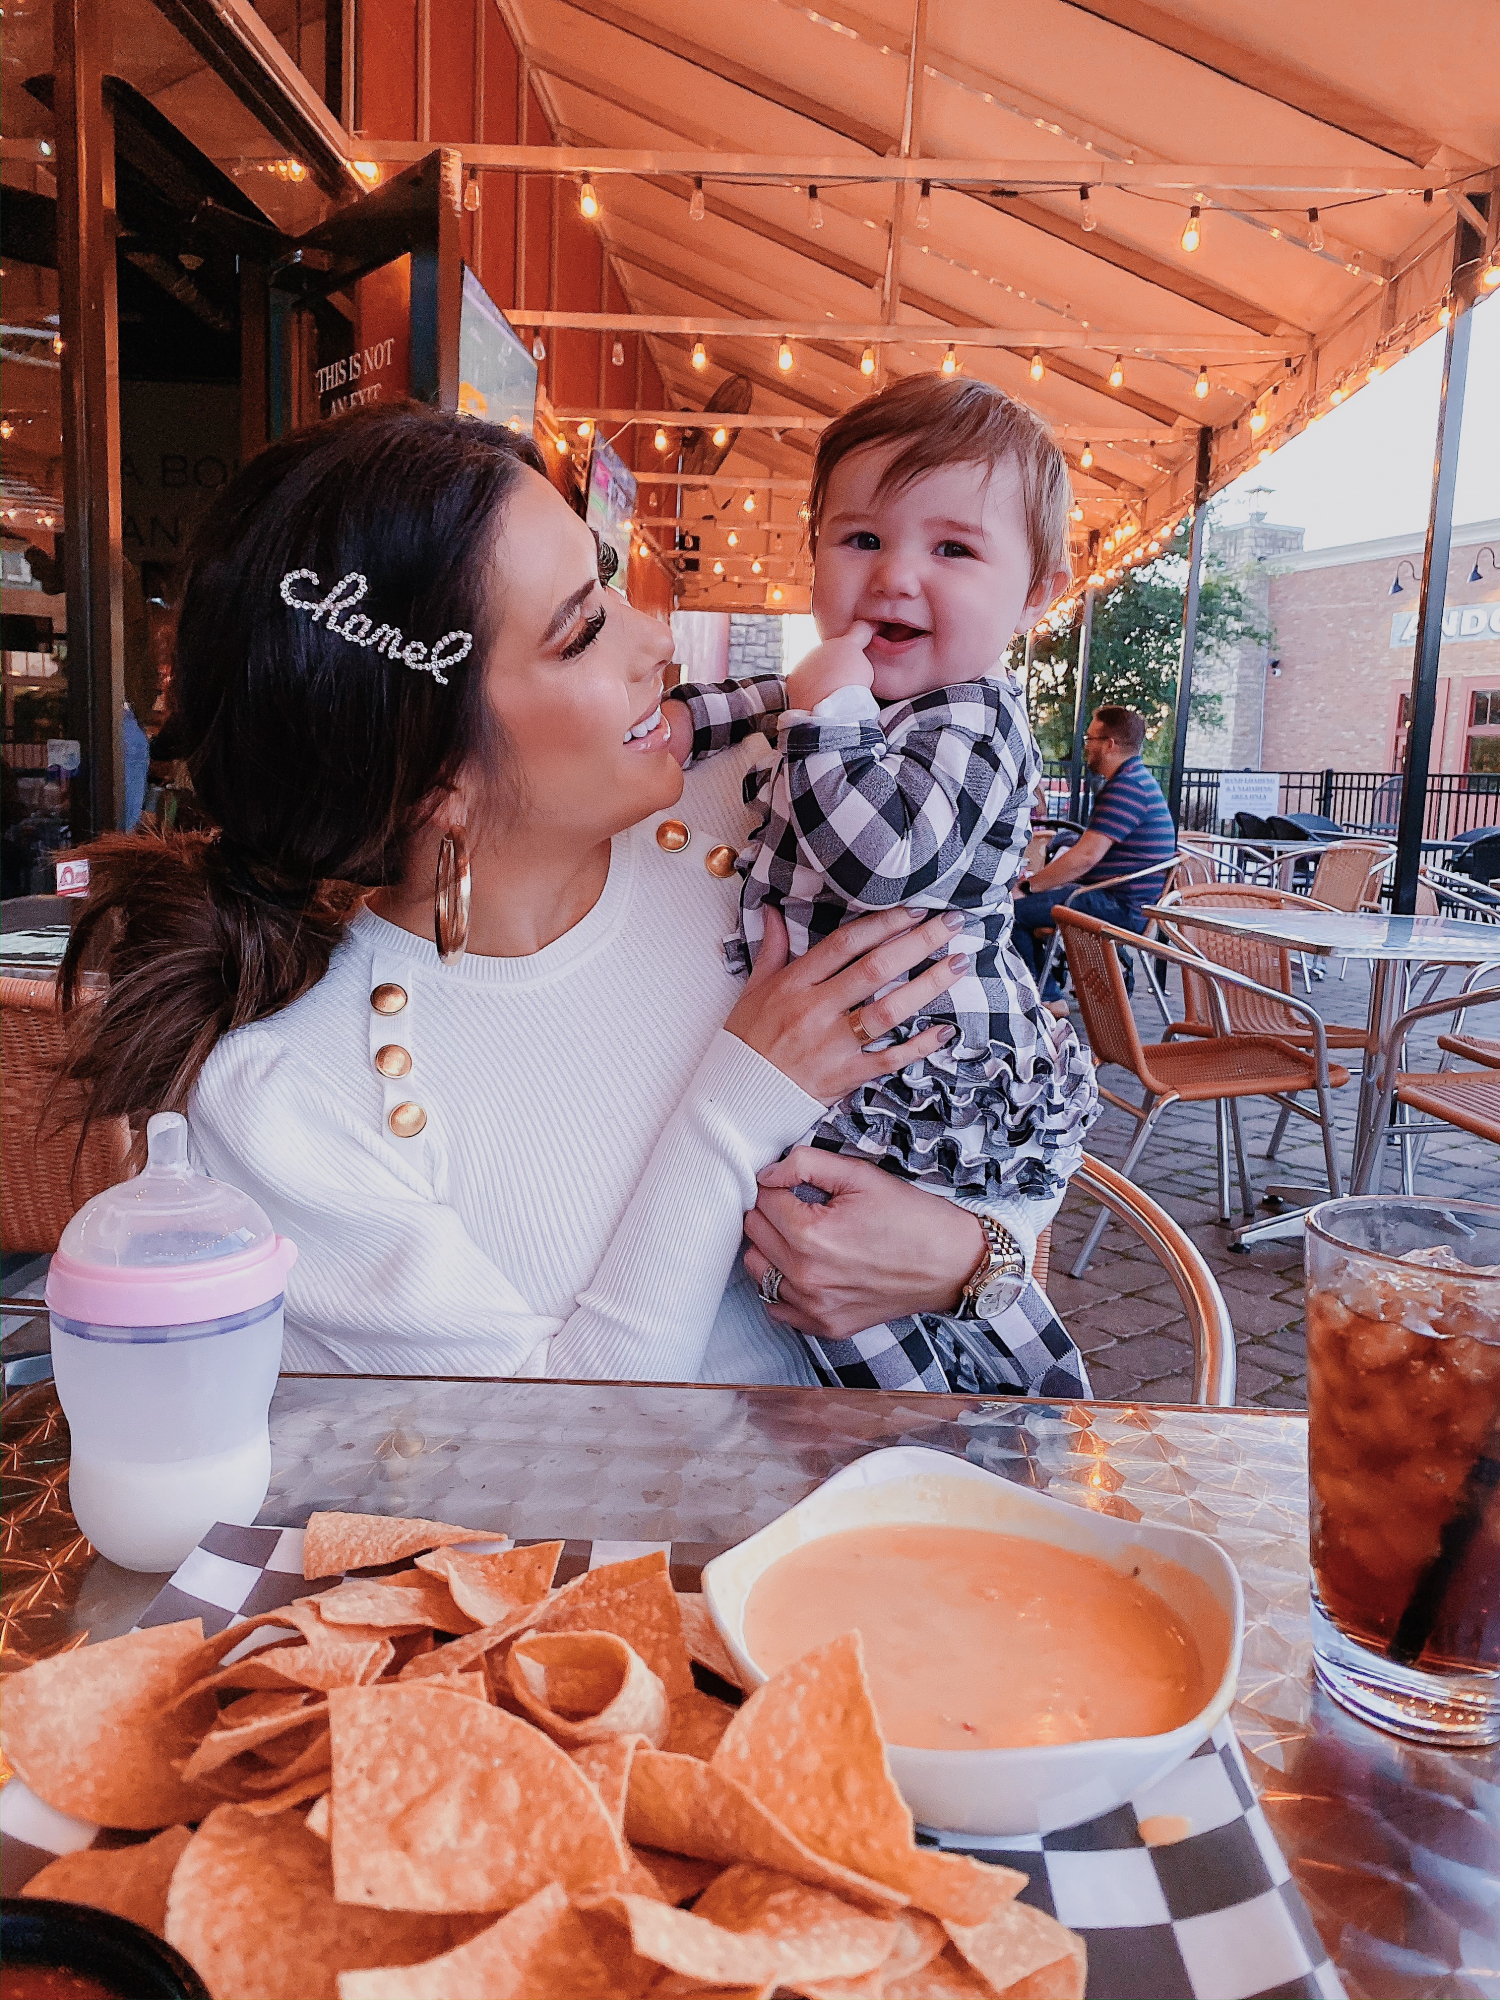 chanel hair clip cursive, emily gemma, tulsa fashion blogger | A YEAR IN REVIEW : MASSIVE 2019 INSTAGRAM RECAP by popular Oklahoma life and style blog, The Sweetest Thing: image of a mom holding her baby and wearing a Zara sweater.